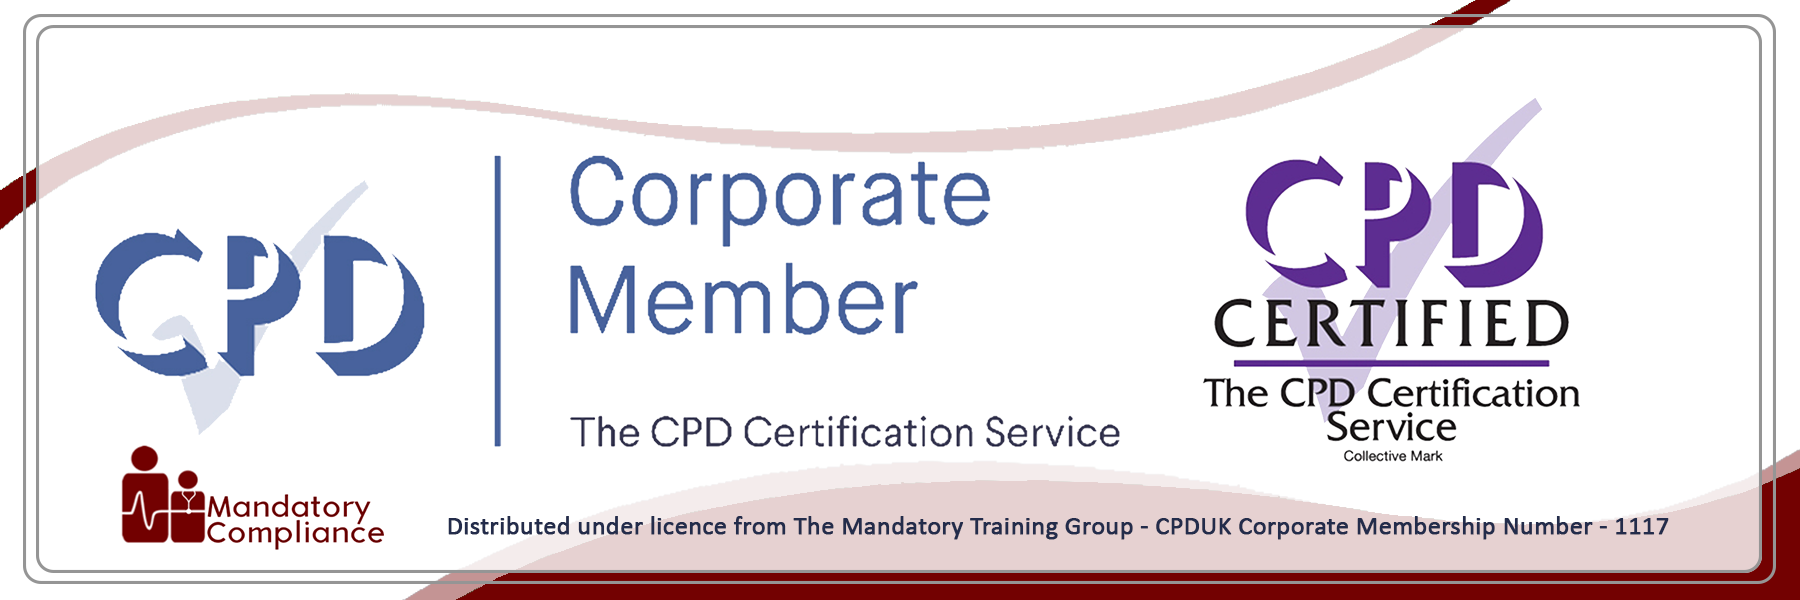 Developing New Managers Training - E-Learning Courses - Mandatory Compliance UK -